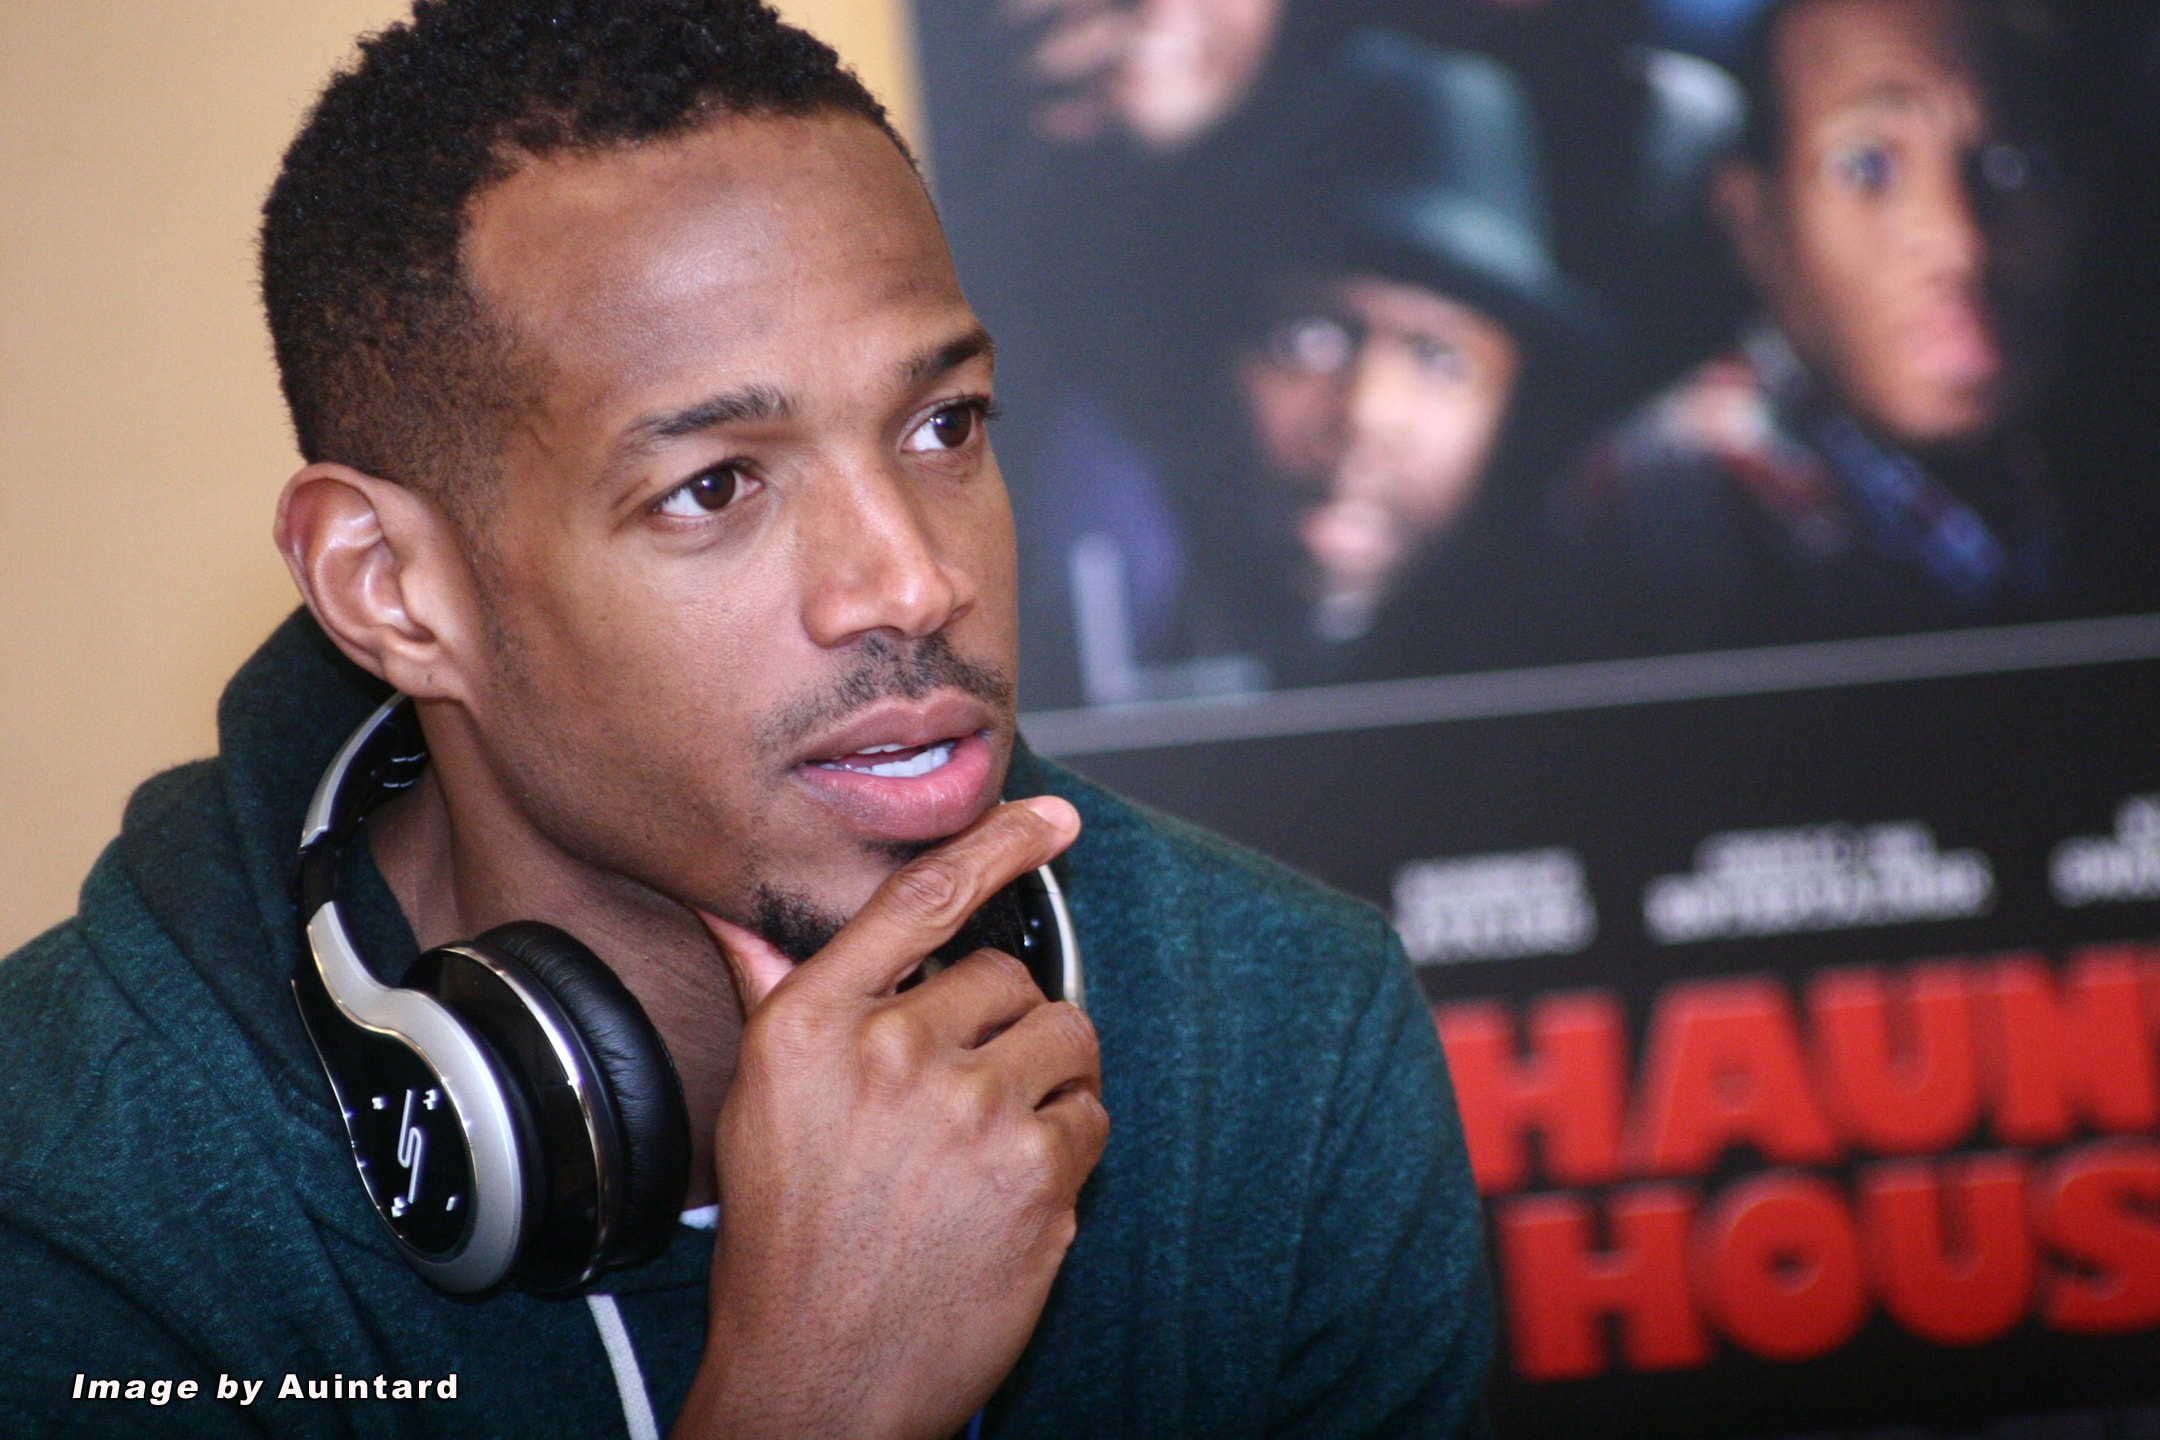 Marlon Wayans Wallpapers hd